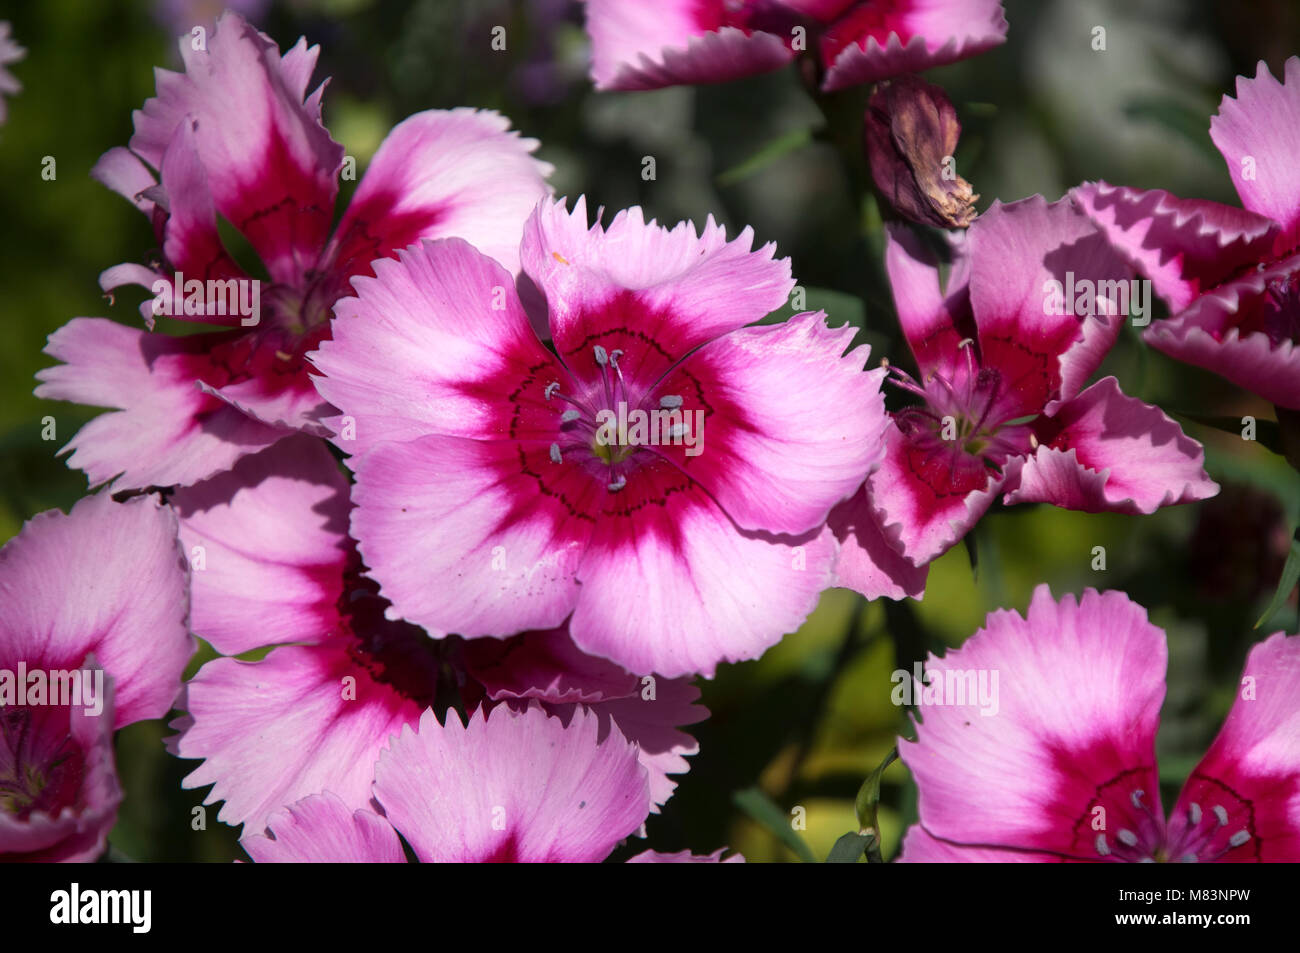 Pink Flowers Australia Sydney Australia Pink Flowers Of Sweet William Plant Stock Photo